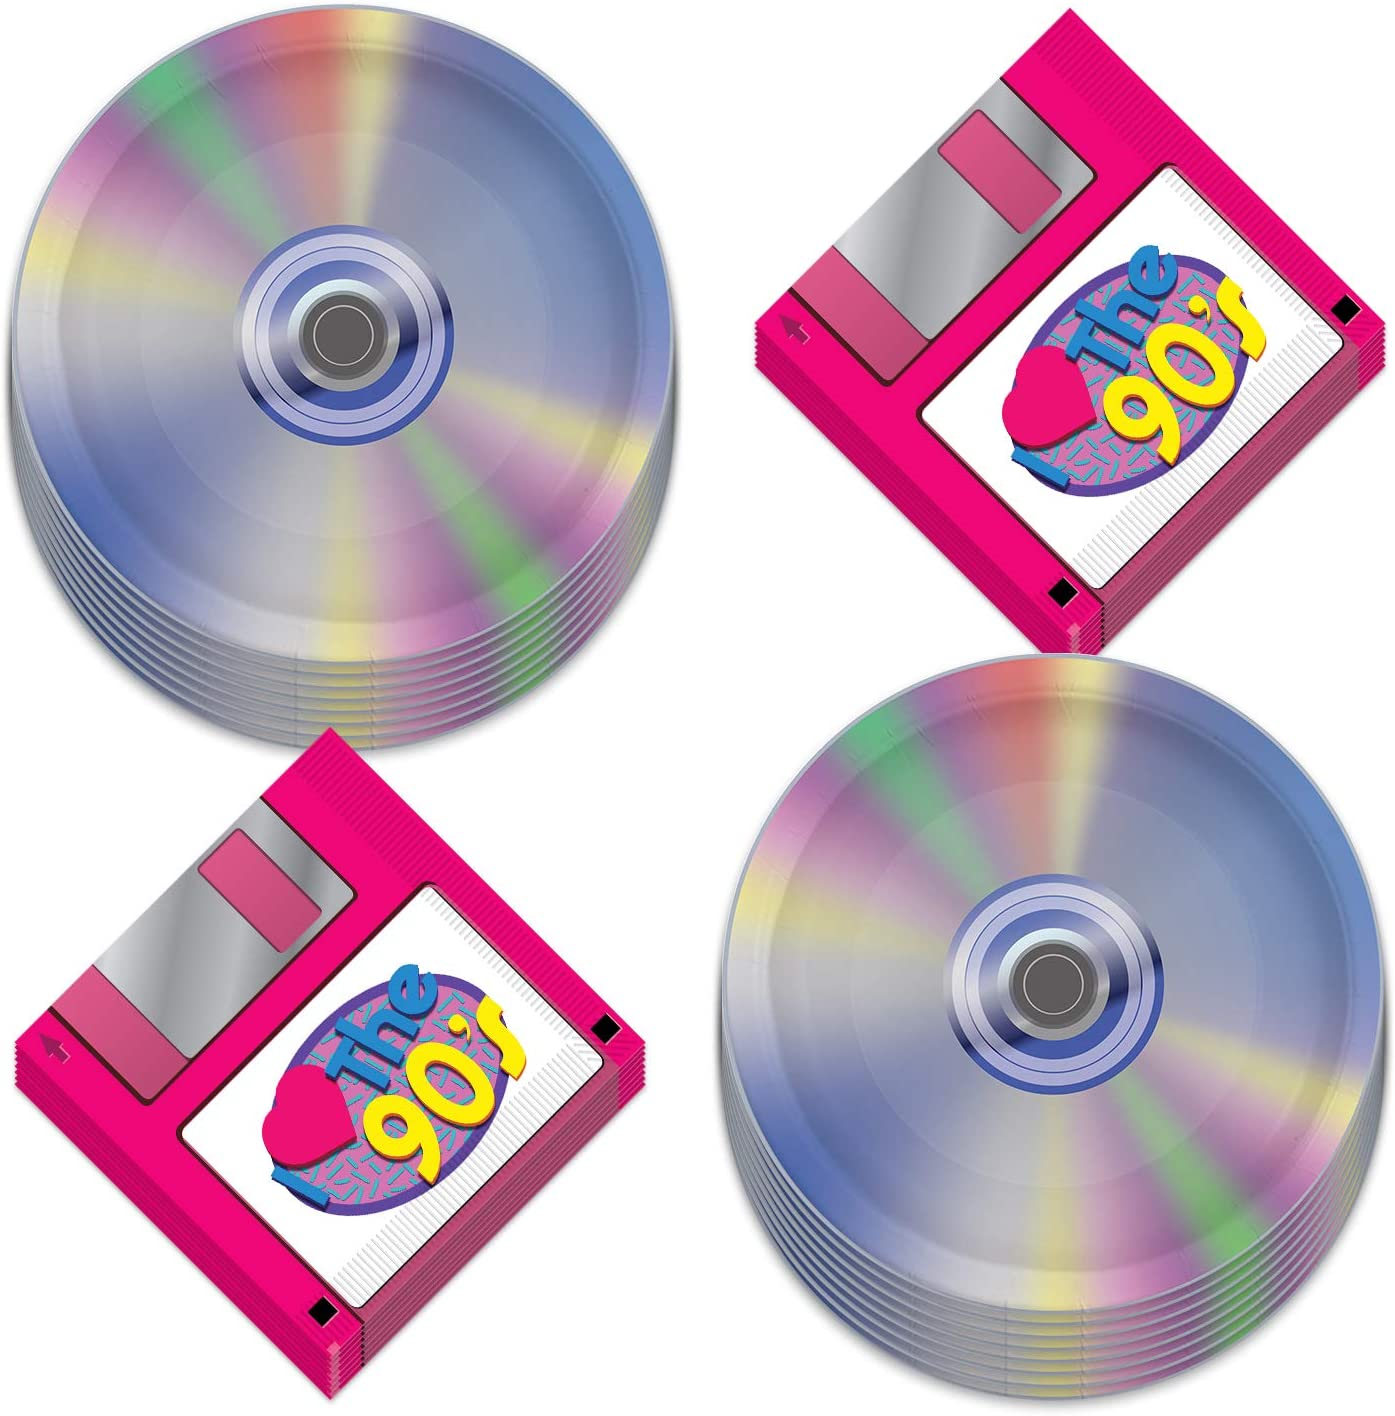 90's Party Supplies - Floppy Disk Napkins and CD Paper Plates (Serves 16)